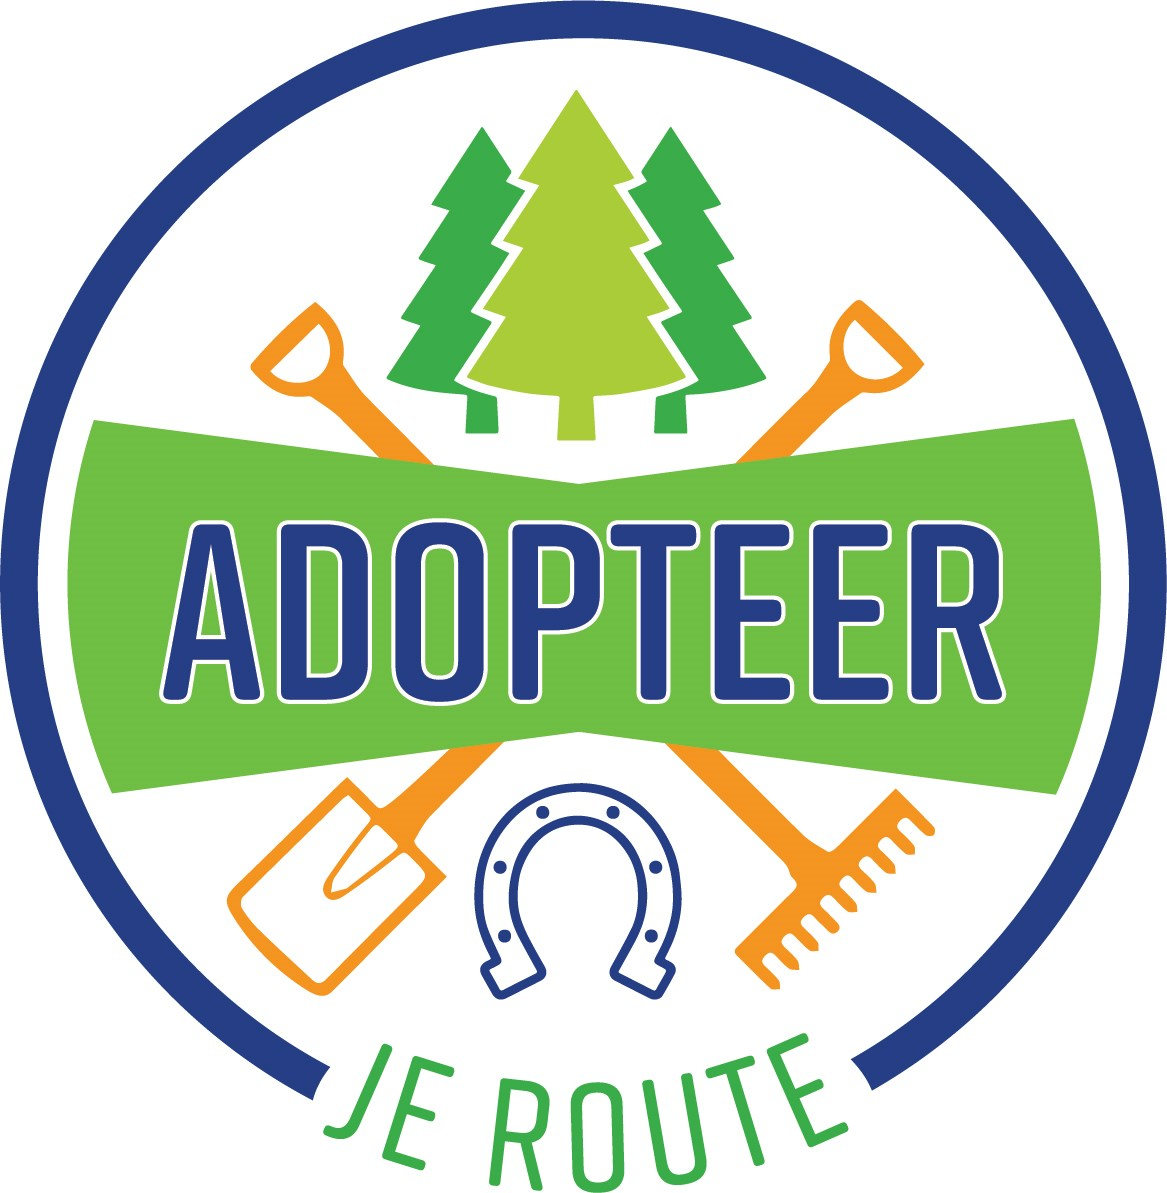 Adopteer je route